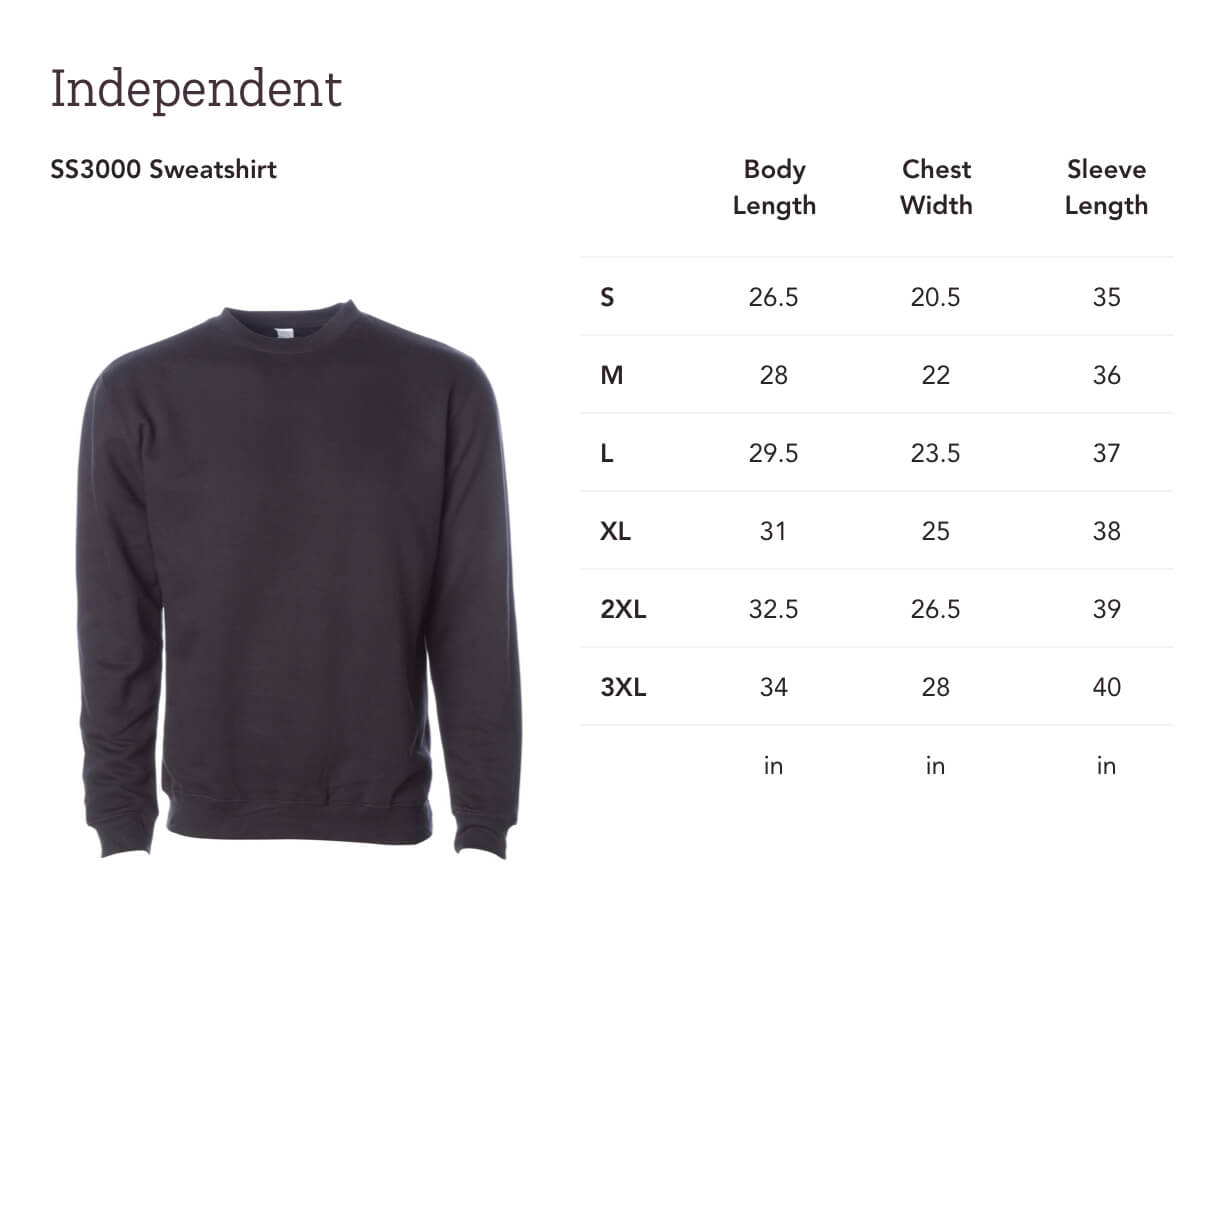 c812f351 This Men's basic crewneck is made with cotton/polyester blend fleece,  generous fit, and quality construction. Features 1x1 ribbing at the collar,  cuffs, ...